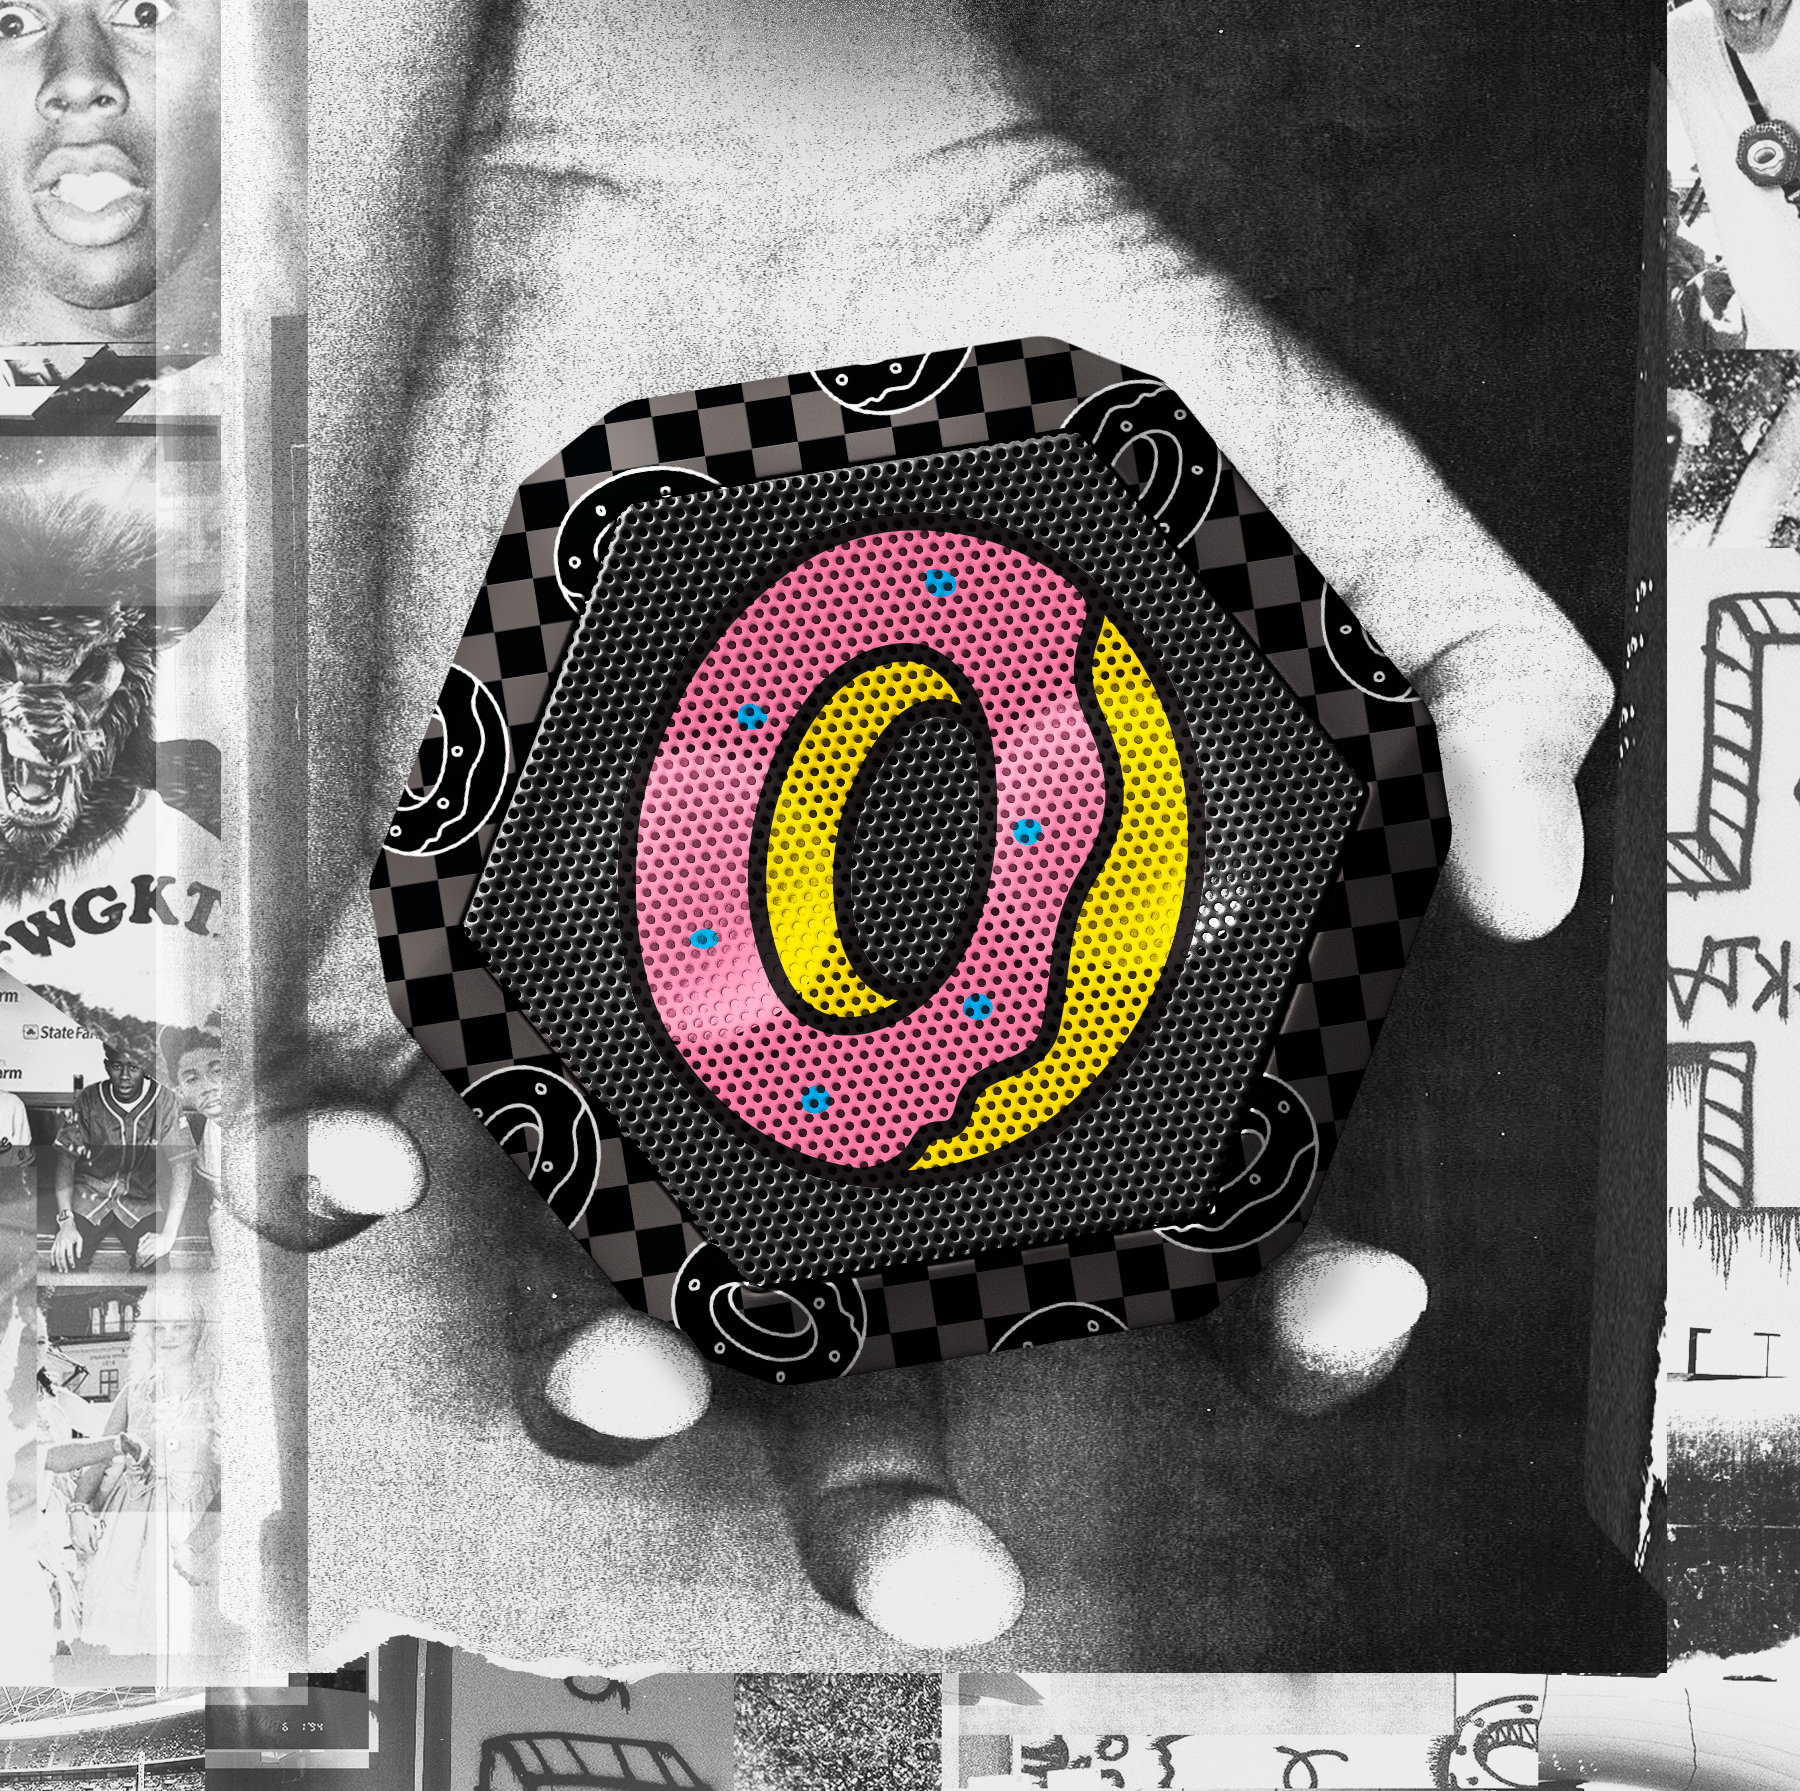 Boombotix oddfuture speaker collaboration advertisement with donut and checkerboard graphics on speaker imposed in a black and white grainy hand